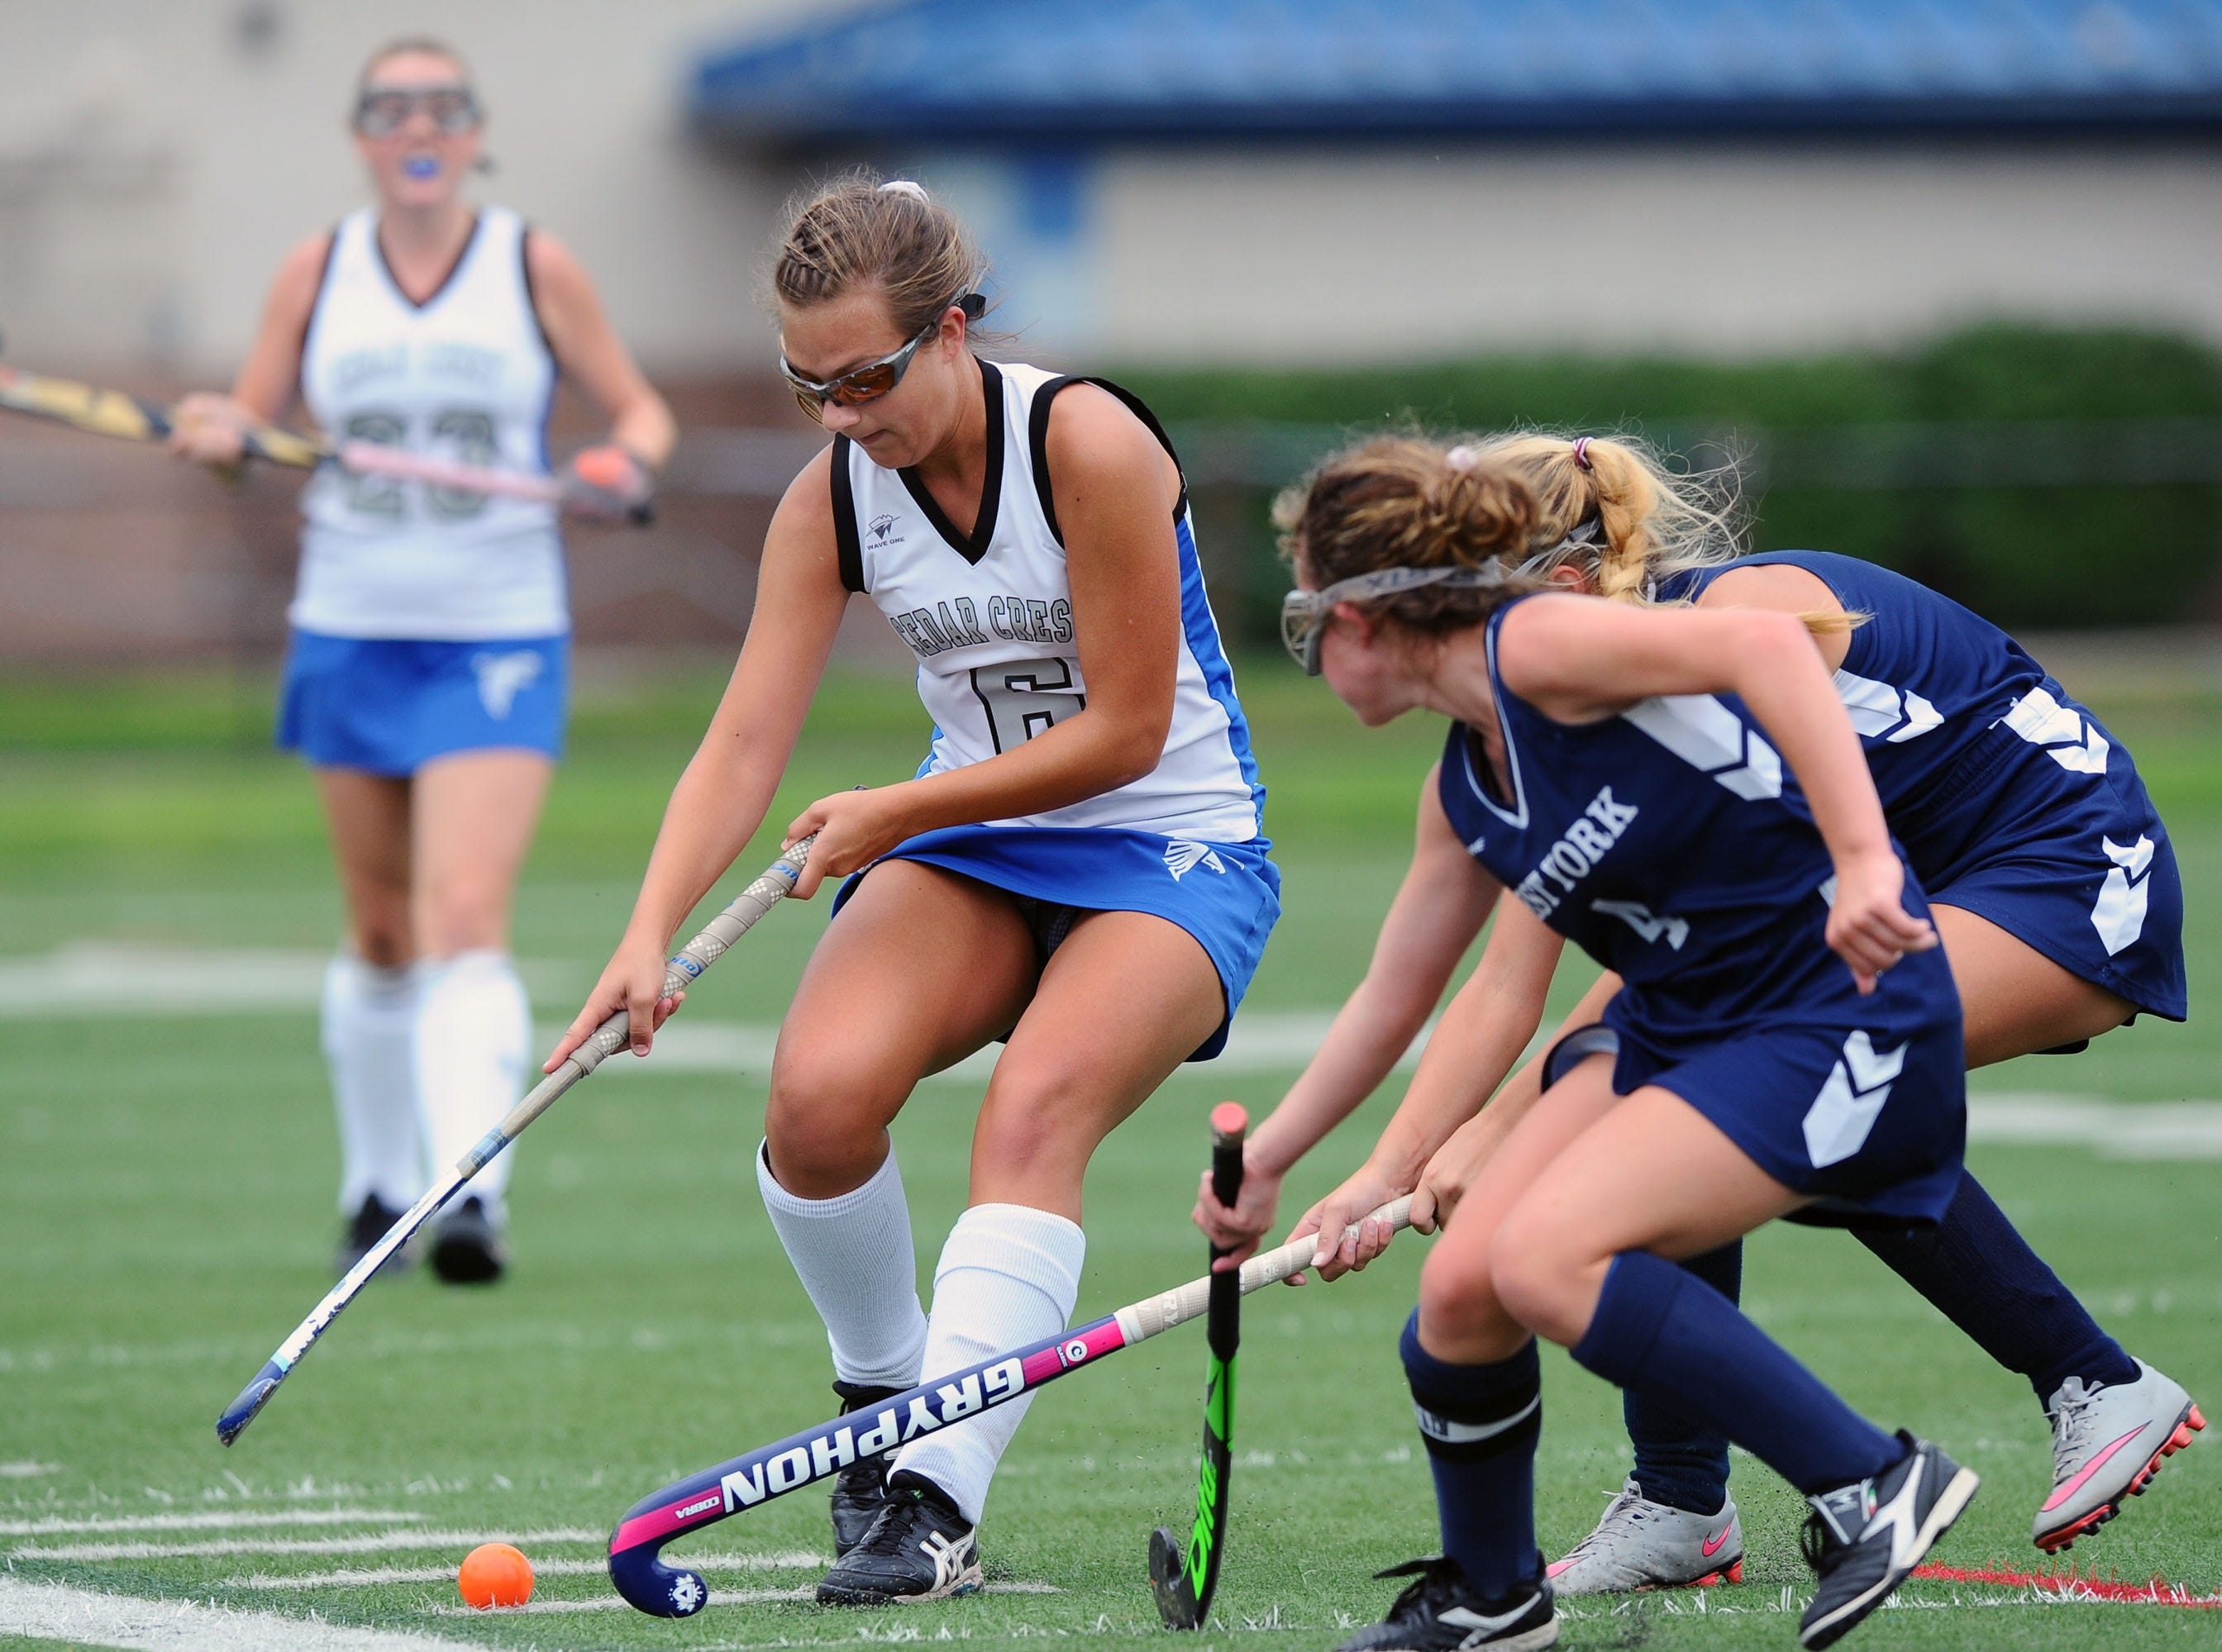 Molly Bucher (6) of Cedar Crest tries to move past two West York defenders during play in the final game of the Falcon Fall Classic at Cedar Crest High School Saturday, September 22,2018. Photo Jeff Ruppenthal.